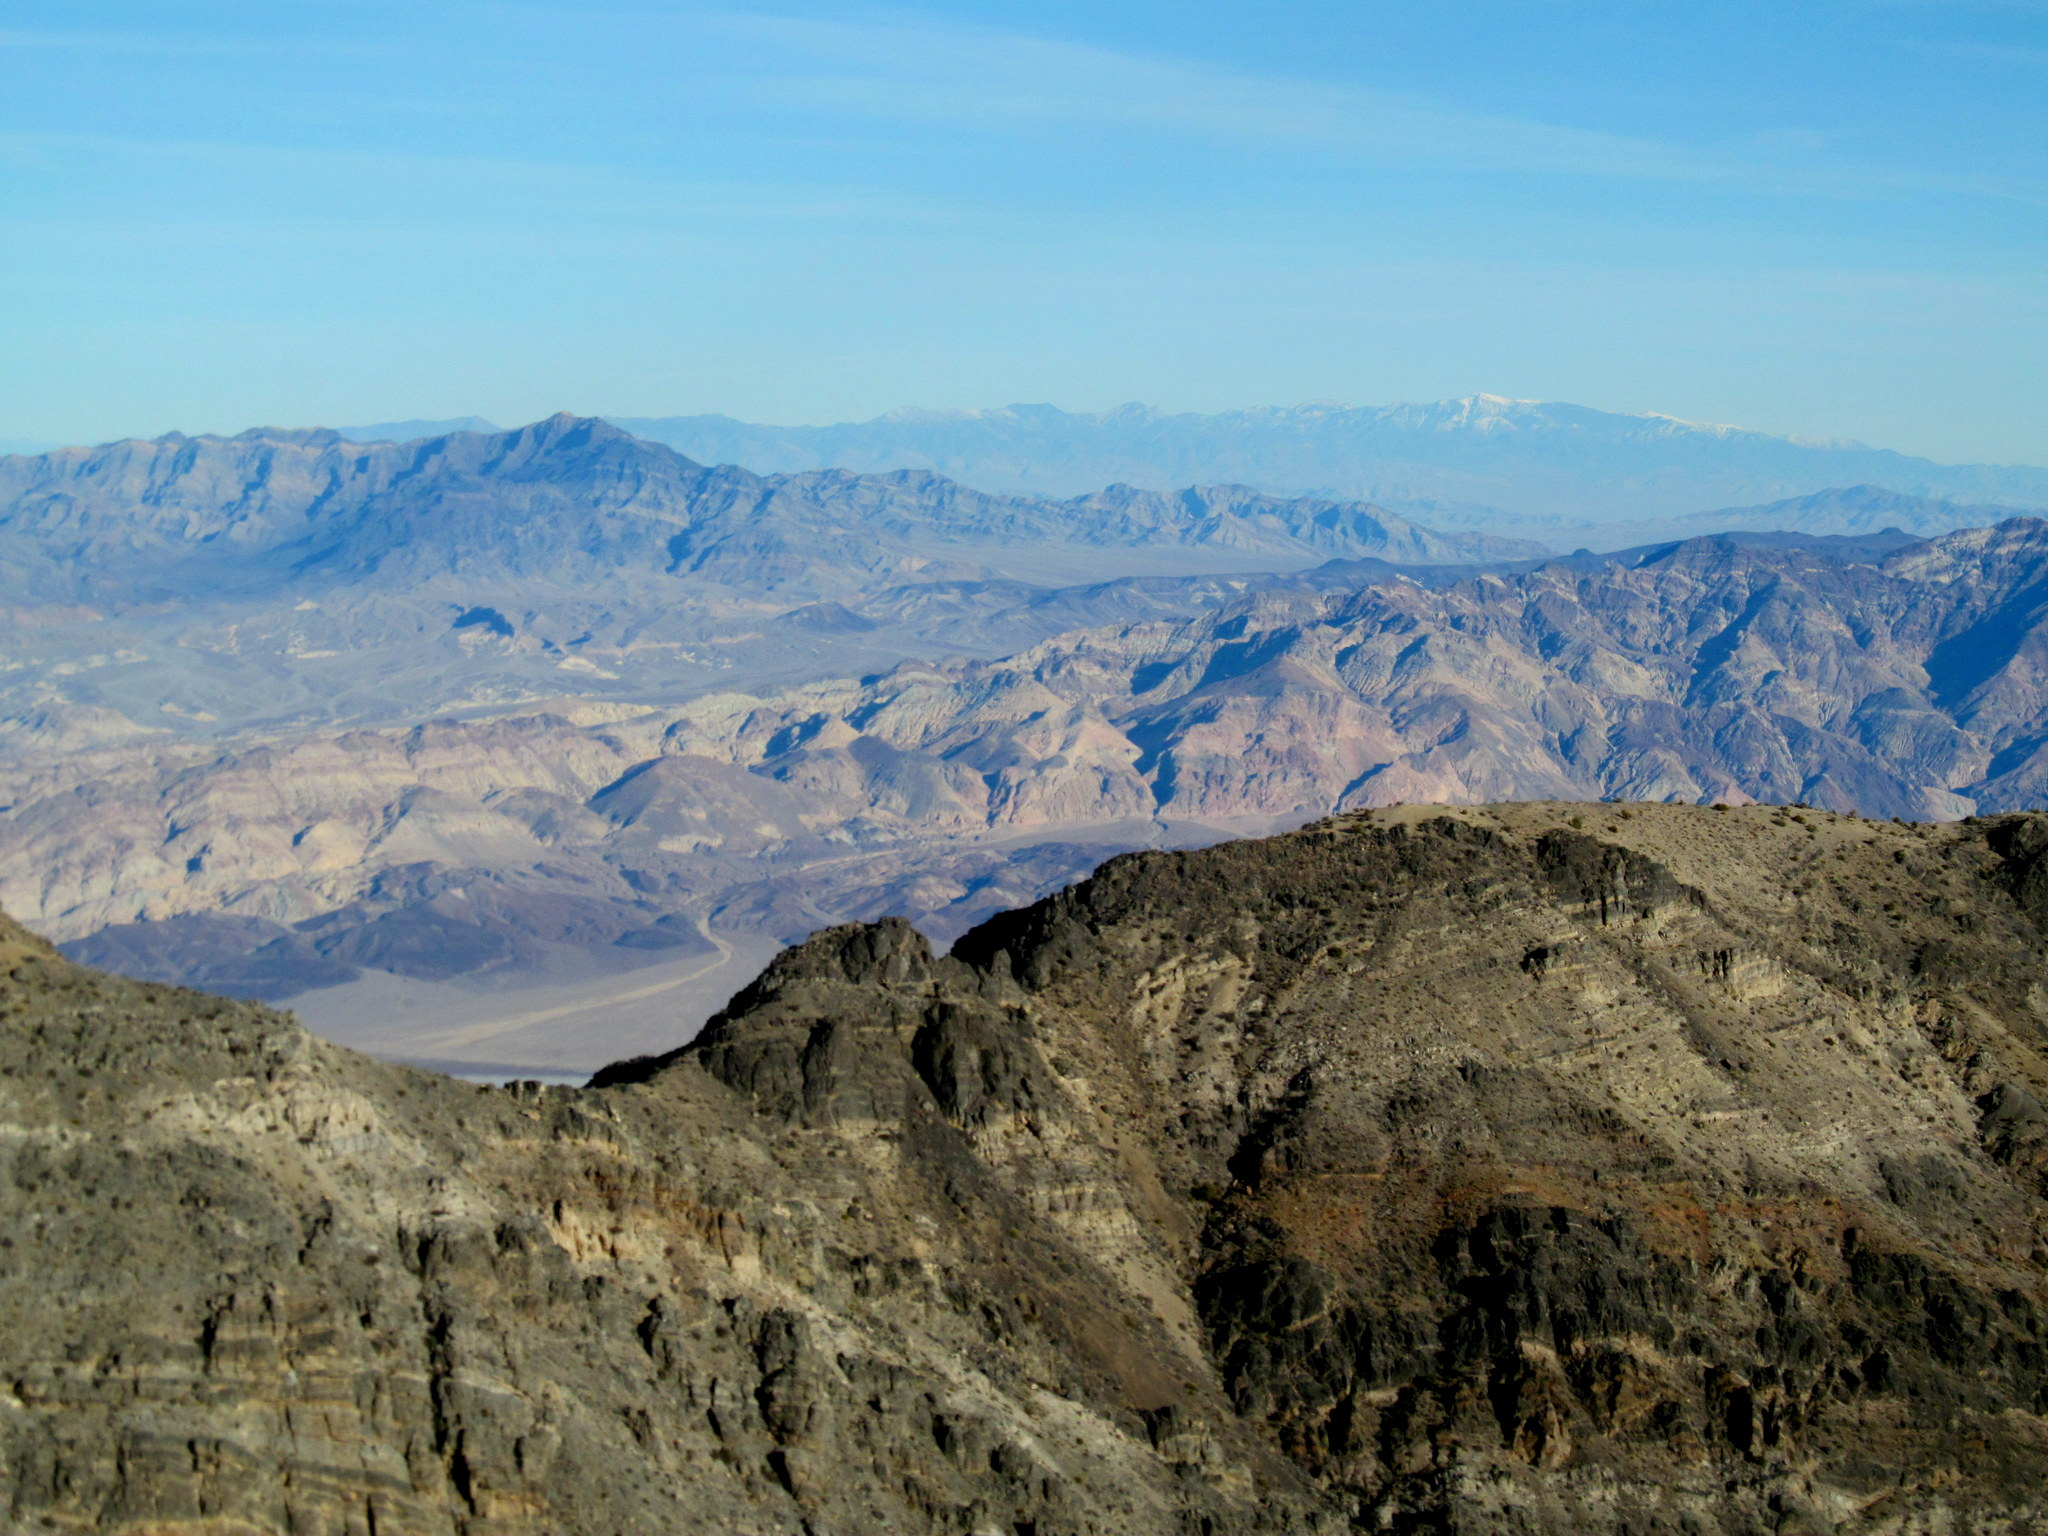 Photo: View east across Death Valley to the distant Spring Mountains